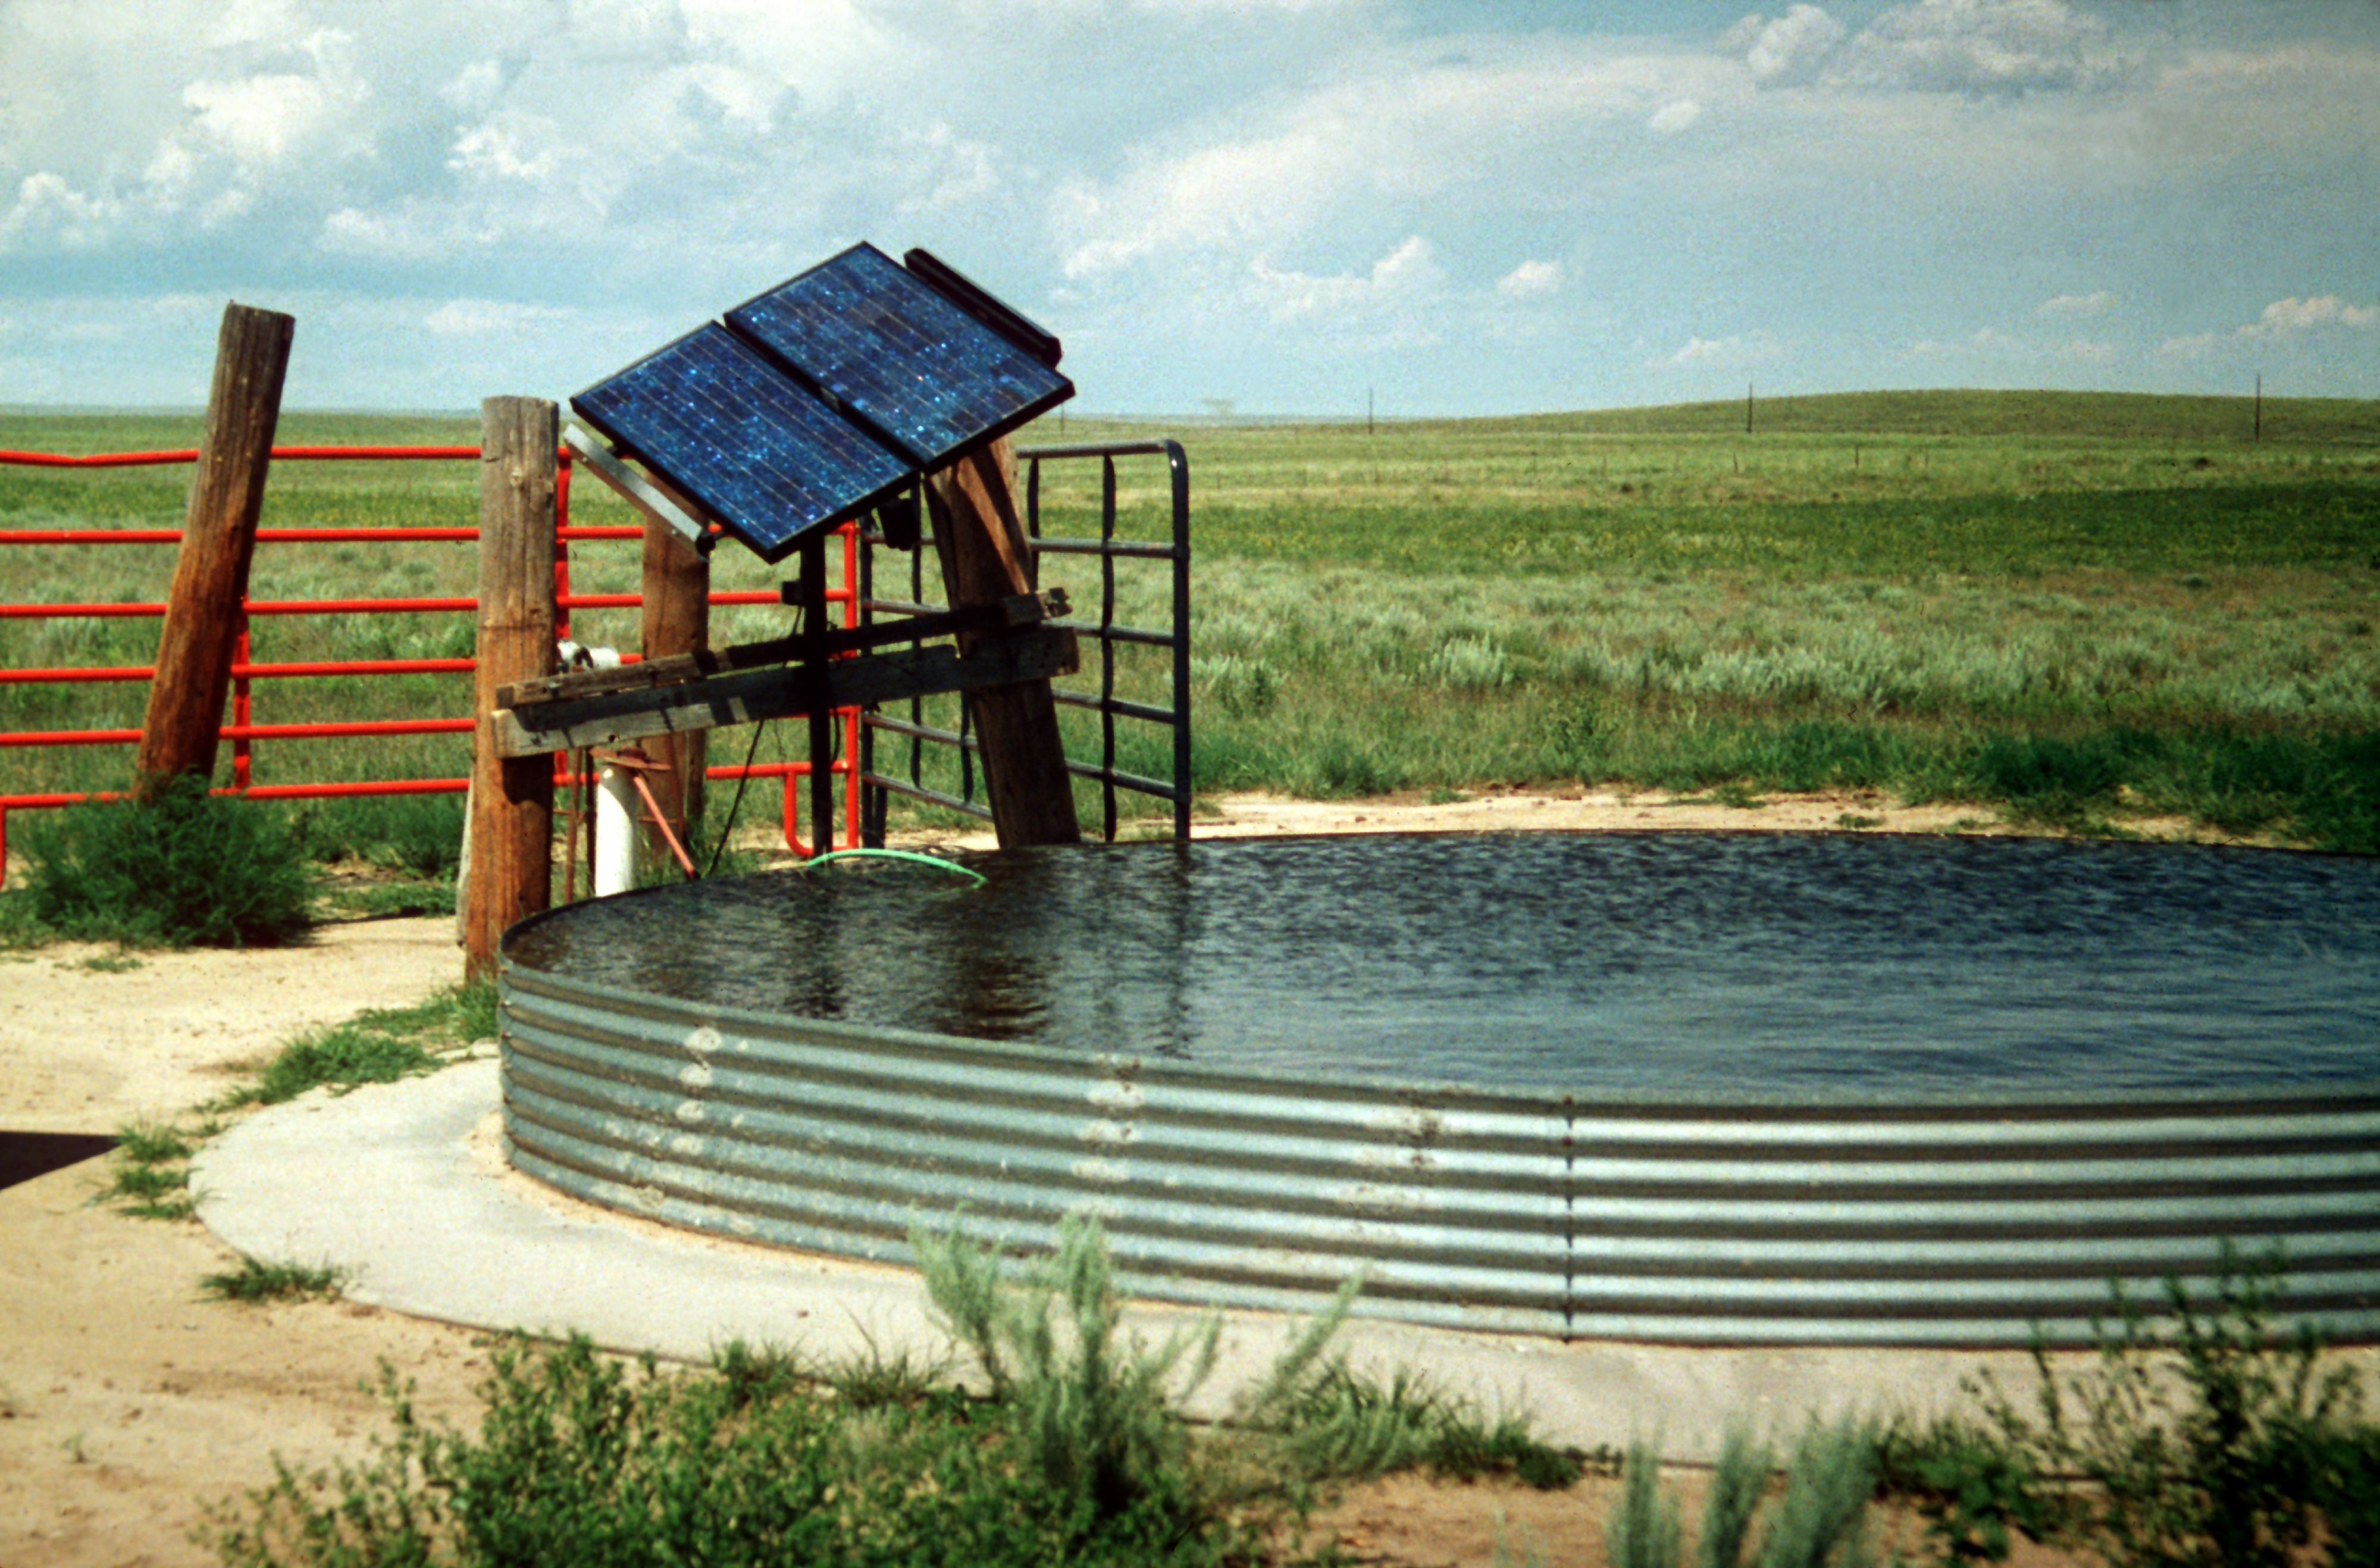 Image of how a solar photovoltaic water pumping system for livestock in a remote location.